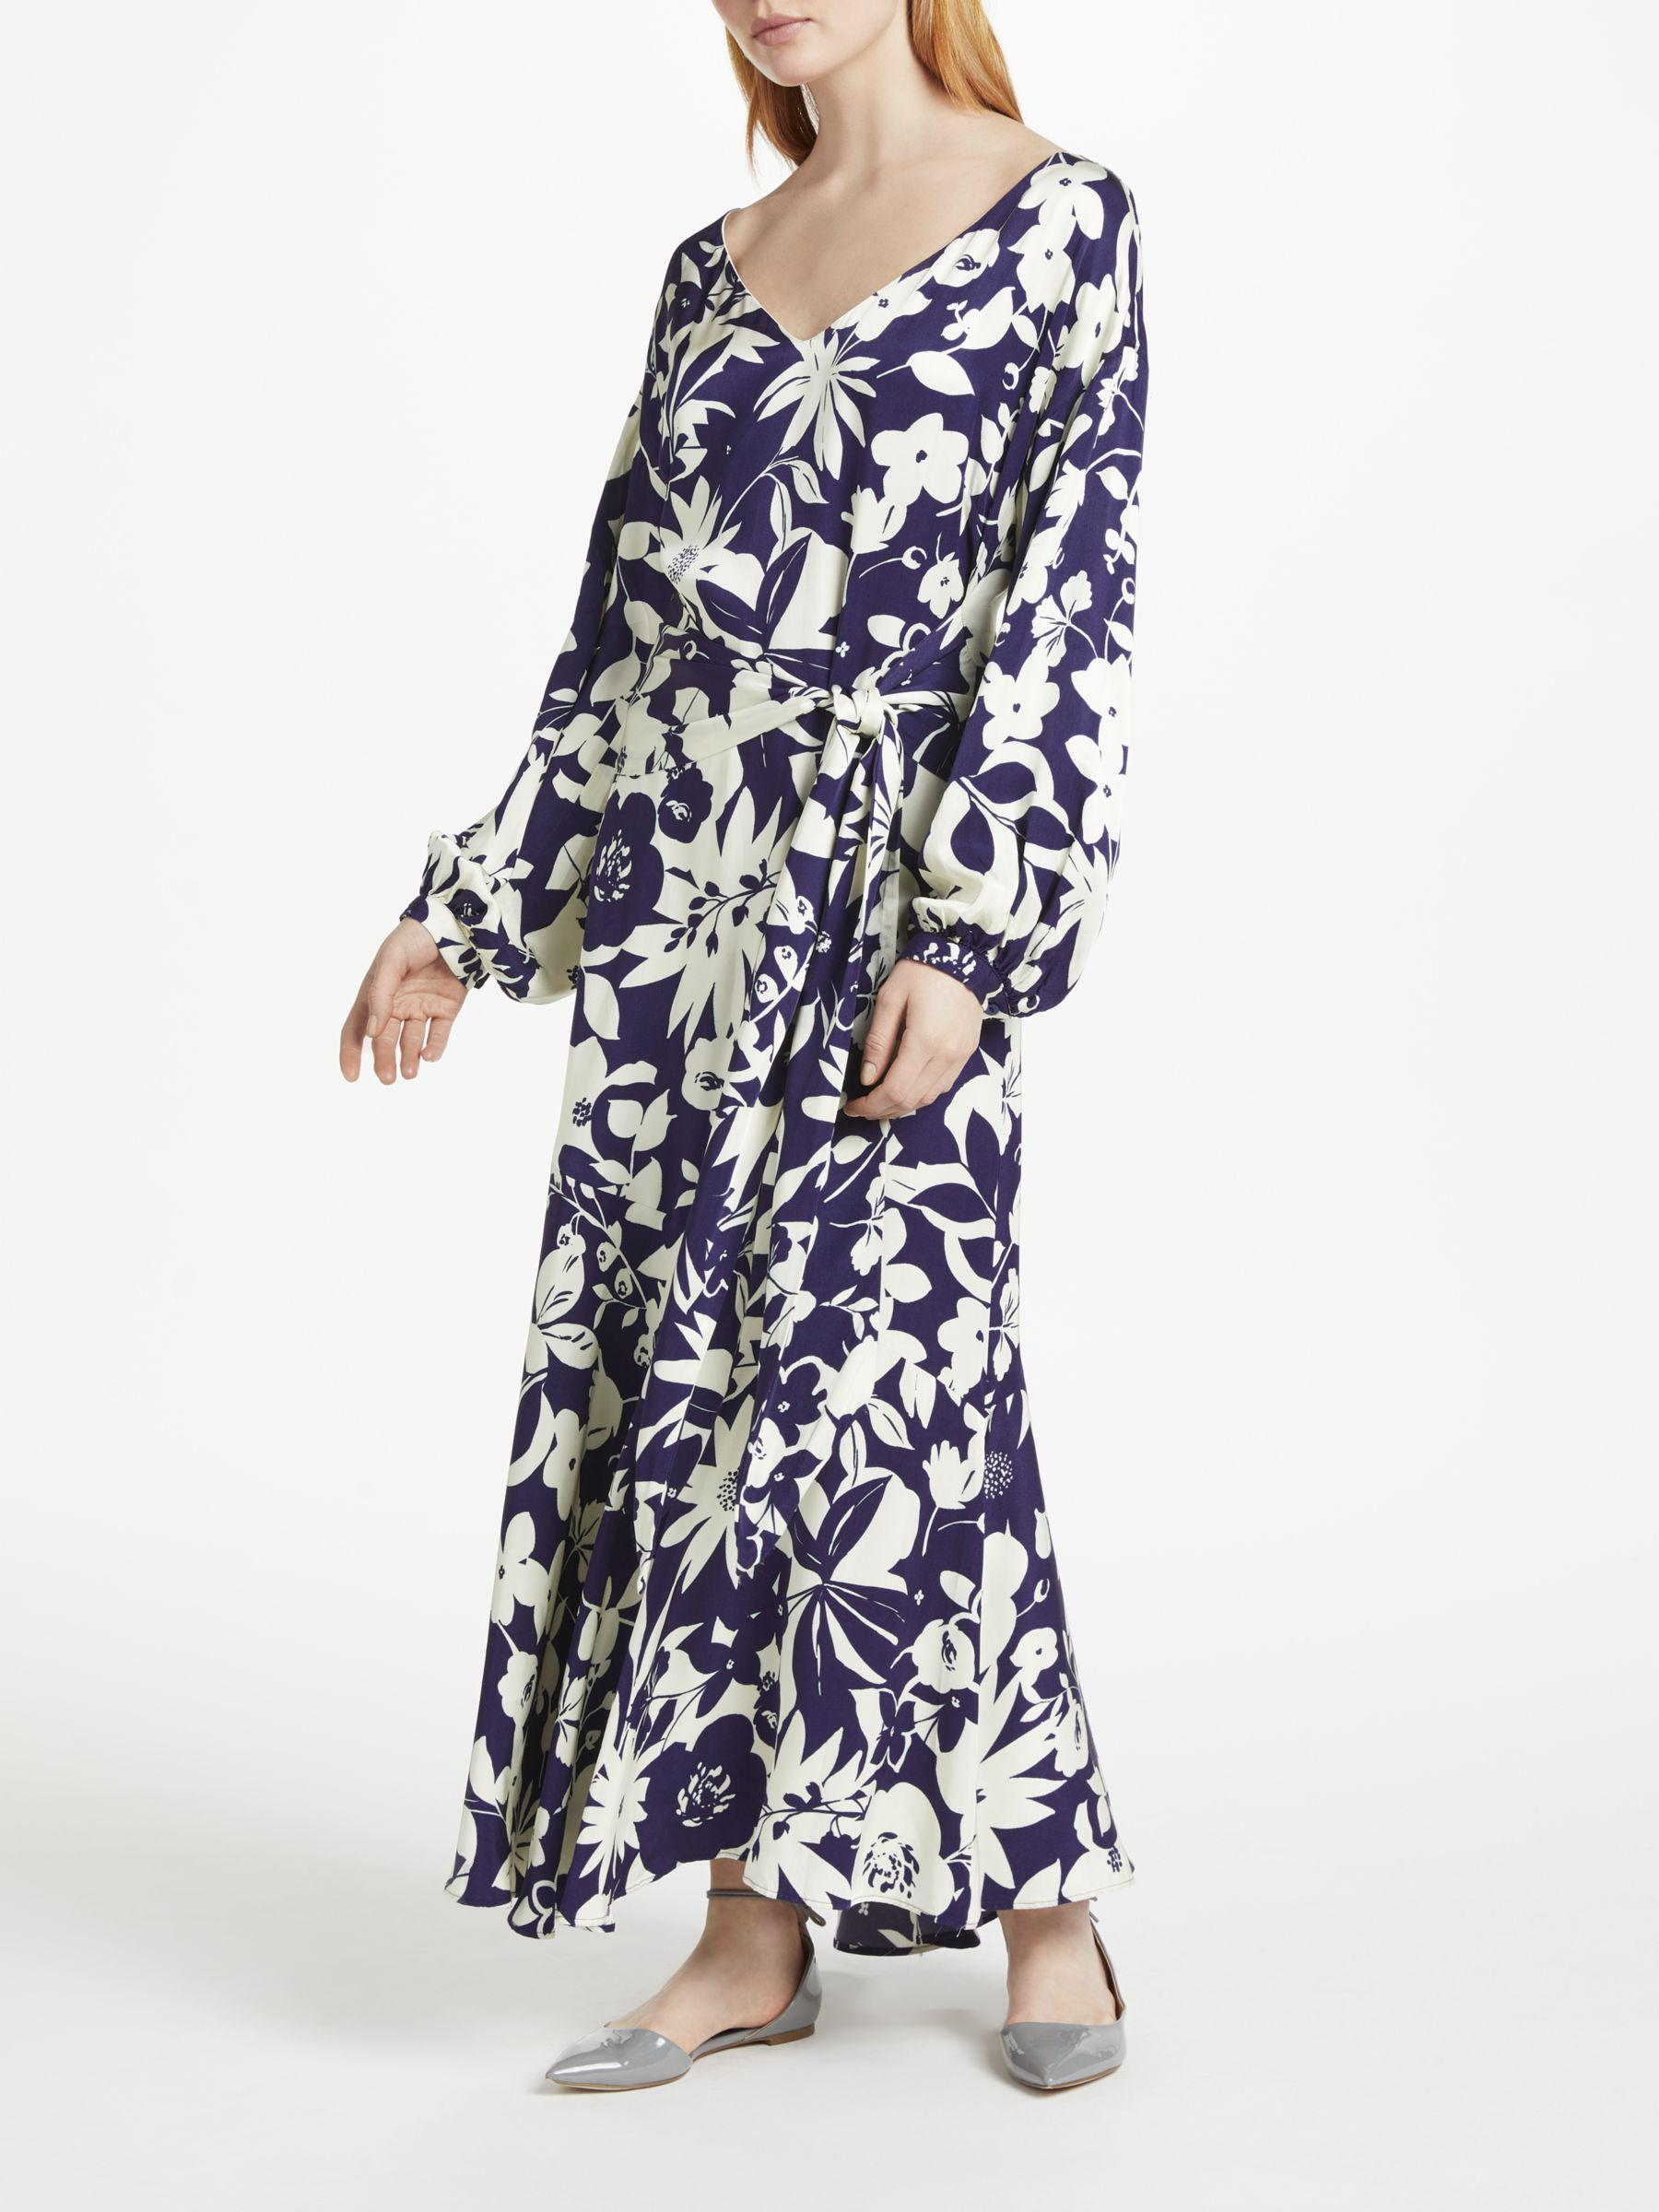 Helix Silhouette Blue Floral Printed Dress Finery Free Shipping 2018 New Clearance 100% Guaranteed Footaction Cheap Online Discount Real rdYyrm